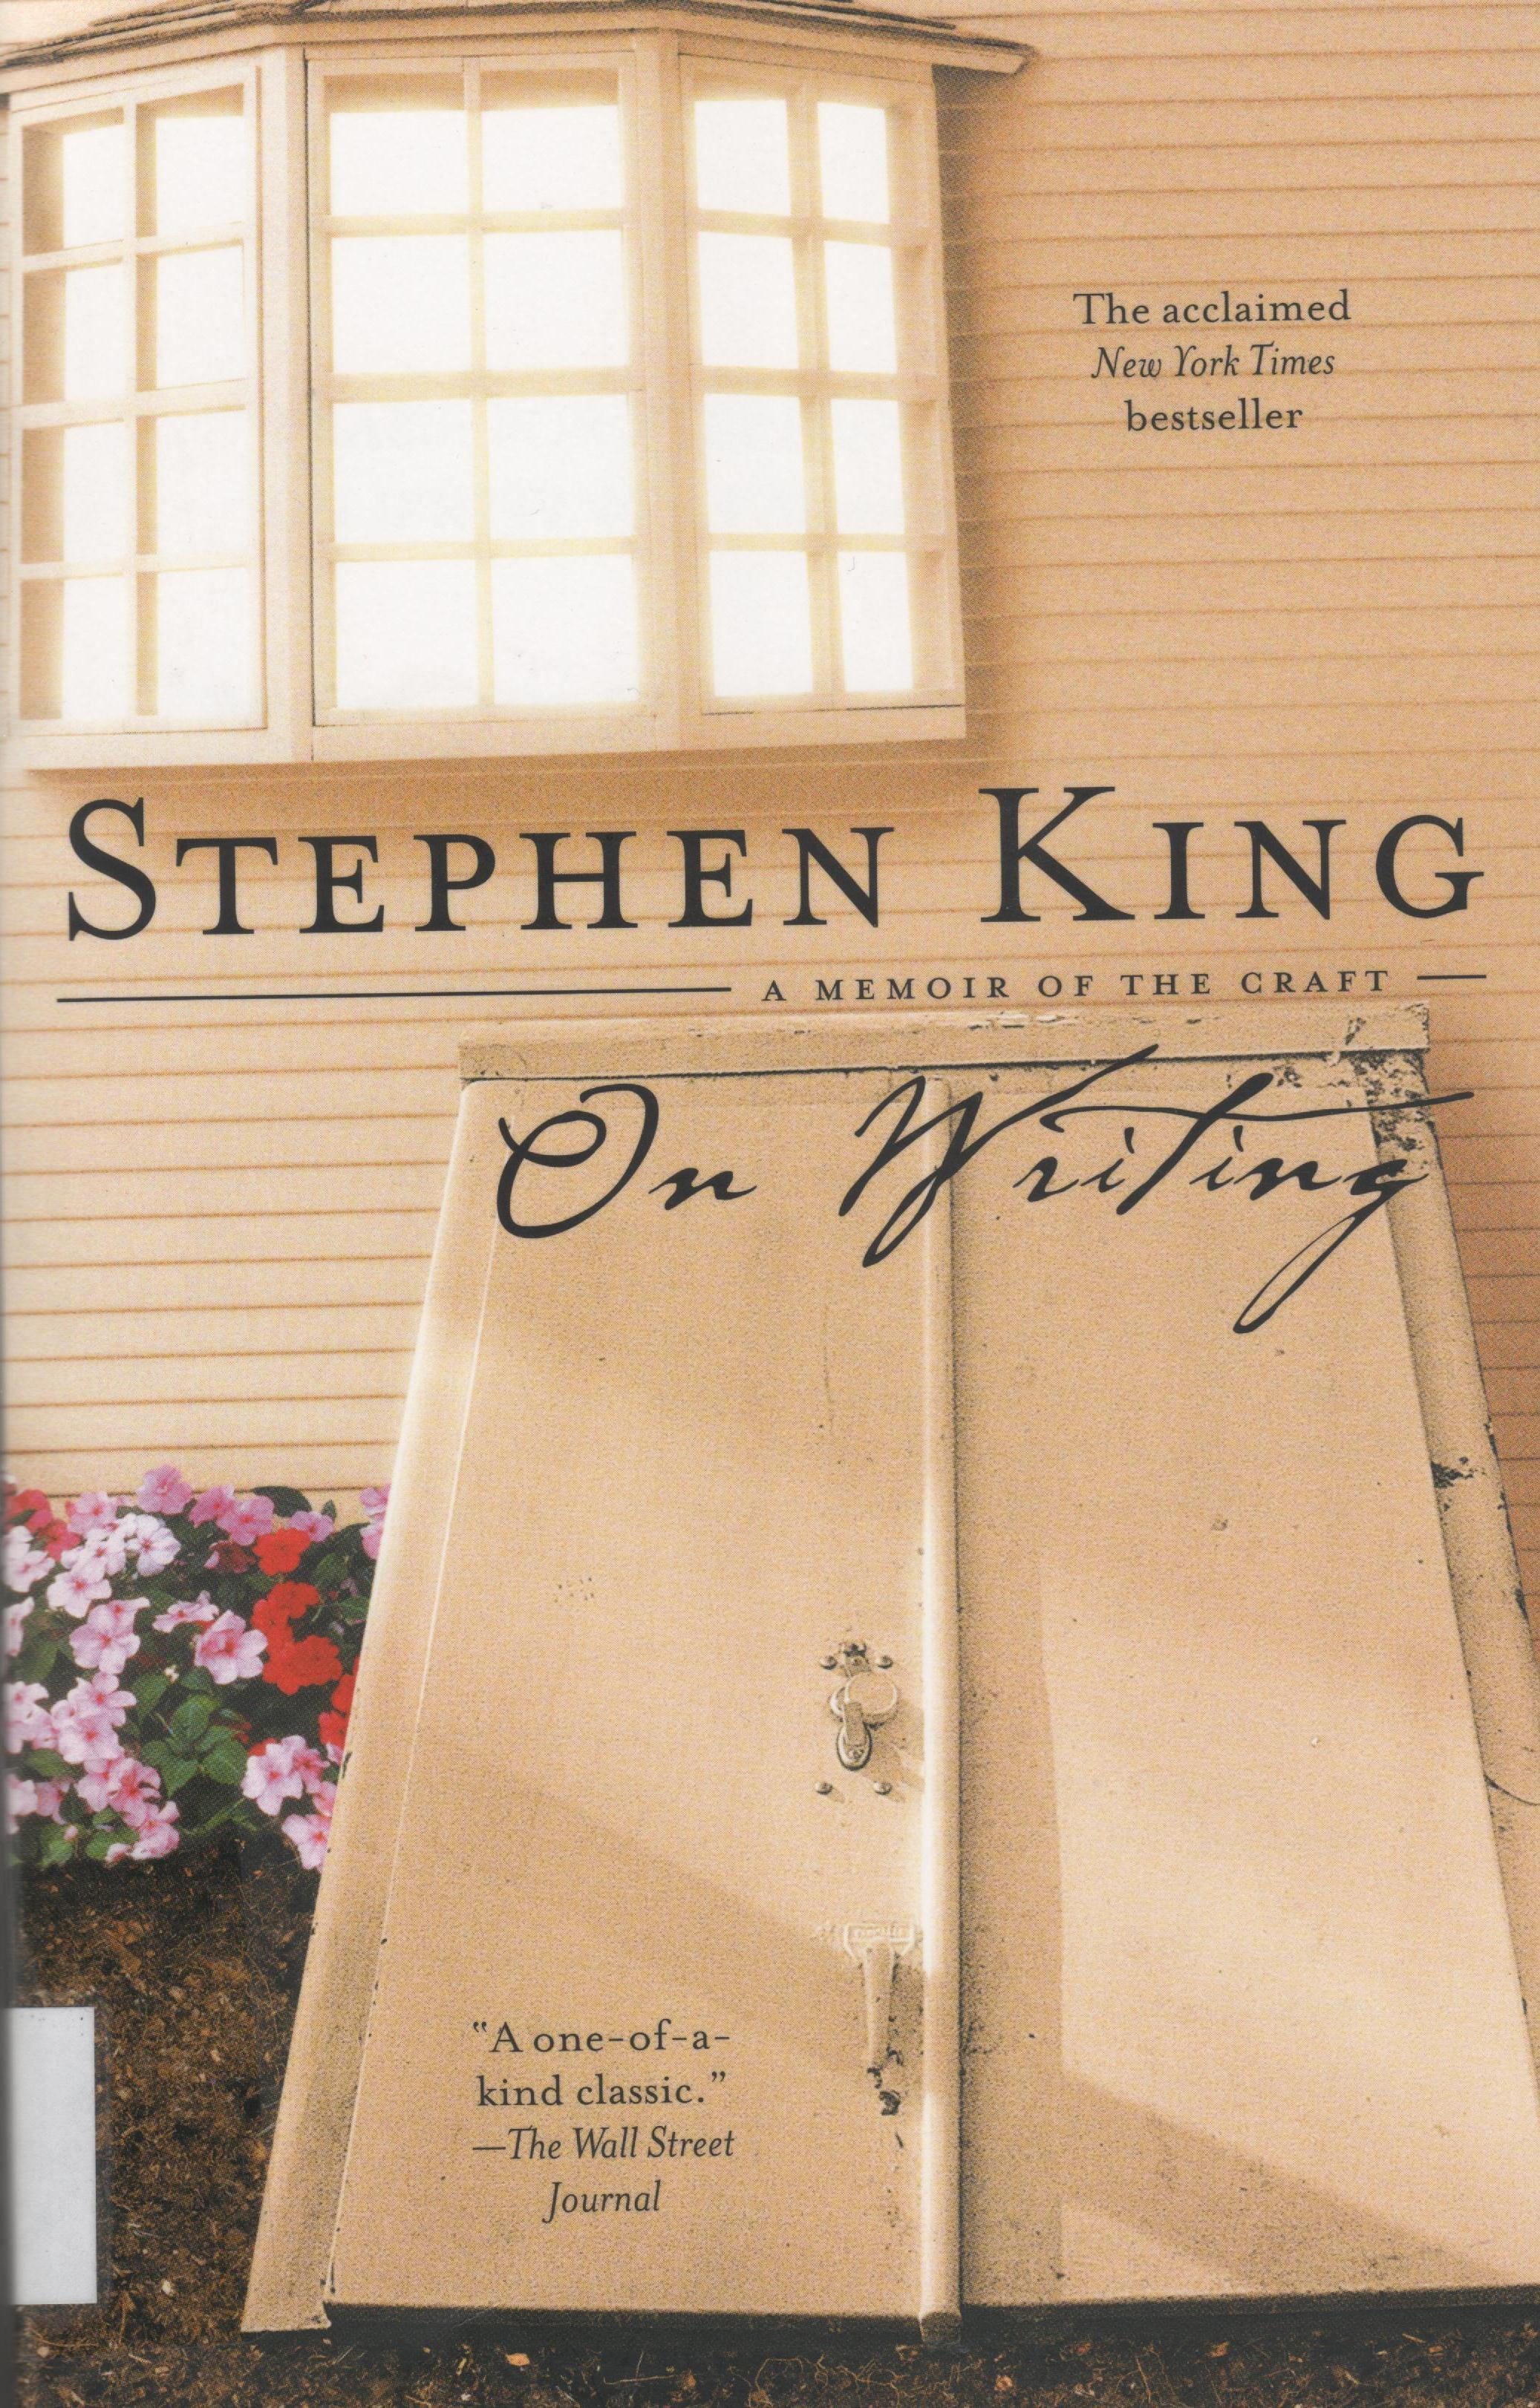 essays on writing by stephen king Reading guide for on writing: a memoir of the craft by stephen king - discussion guide for book clubs.